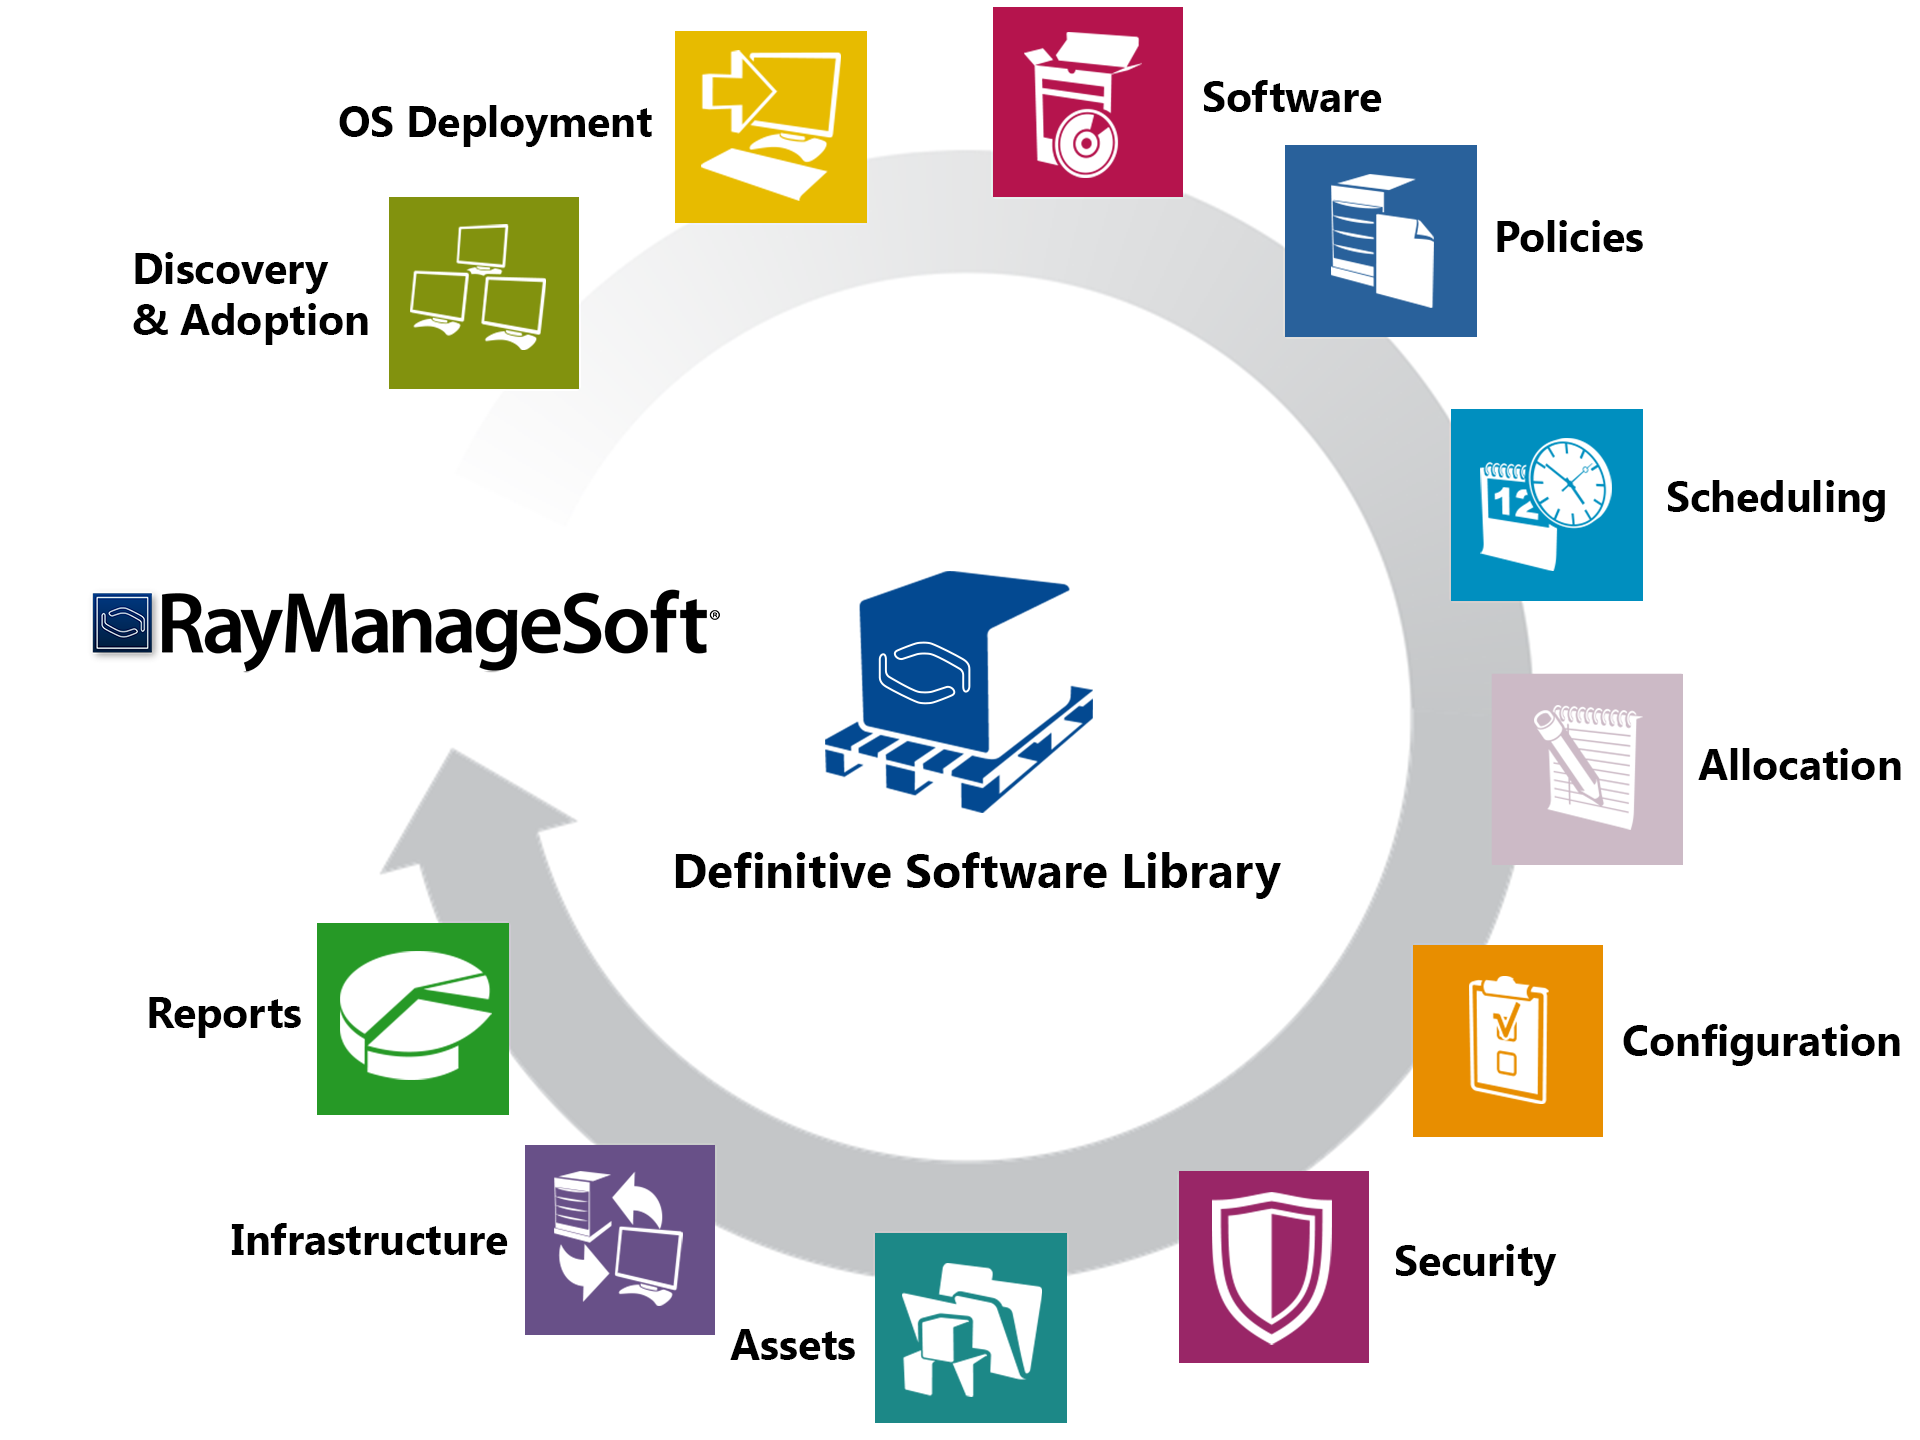 Introduction RayManageSoft infinity provides a complete set of products for software and operating system (OS) deployment, vulnerability analysis and patch management for Microsoft products and other